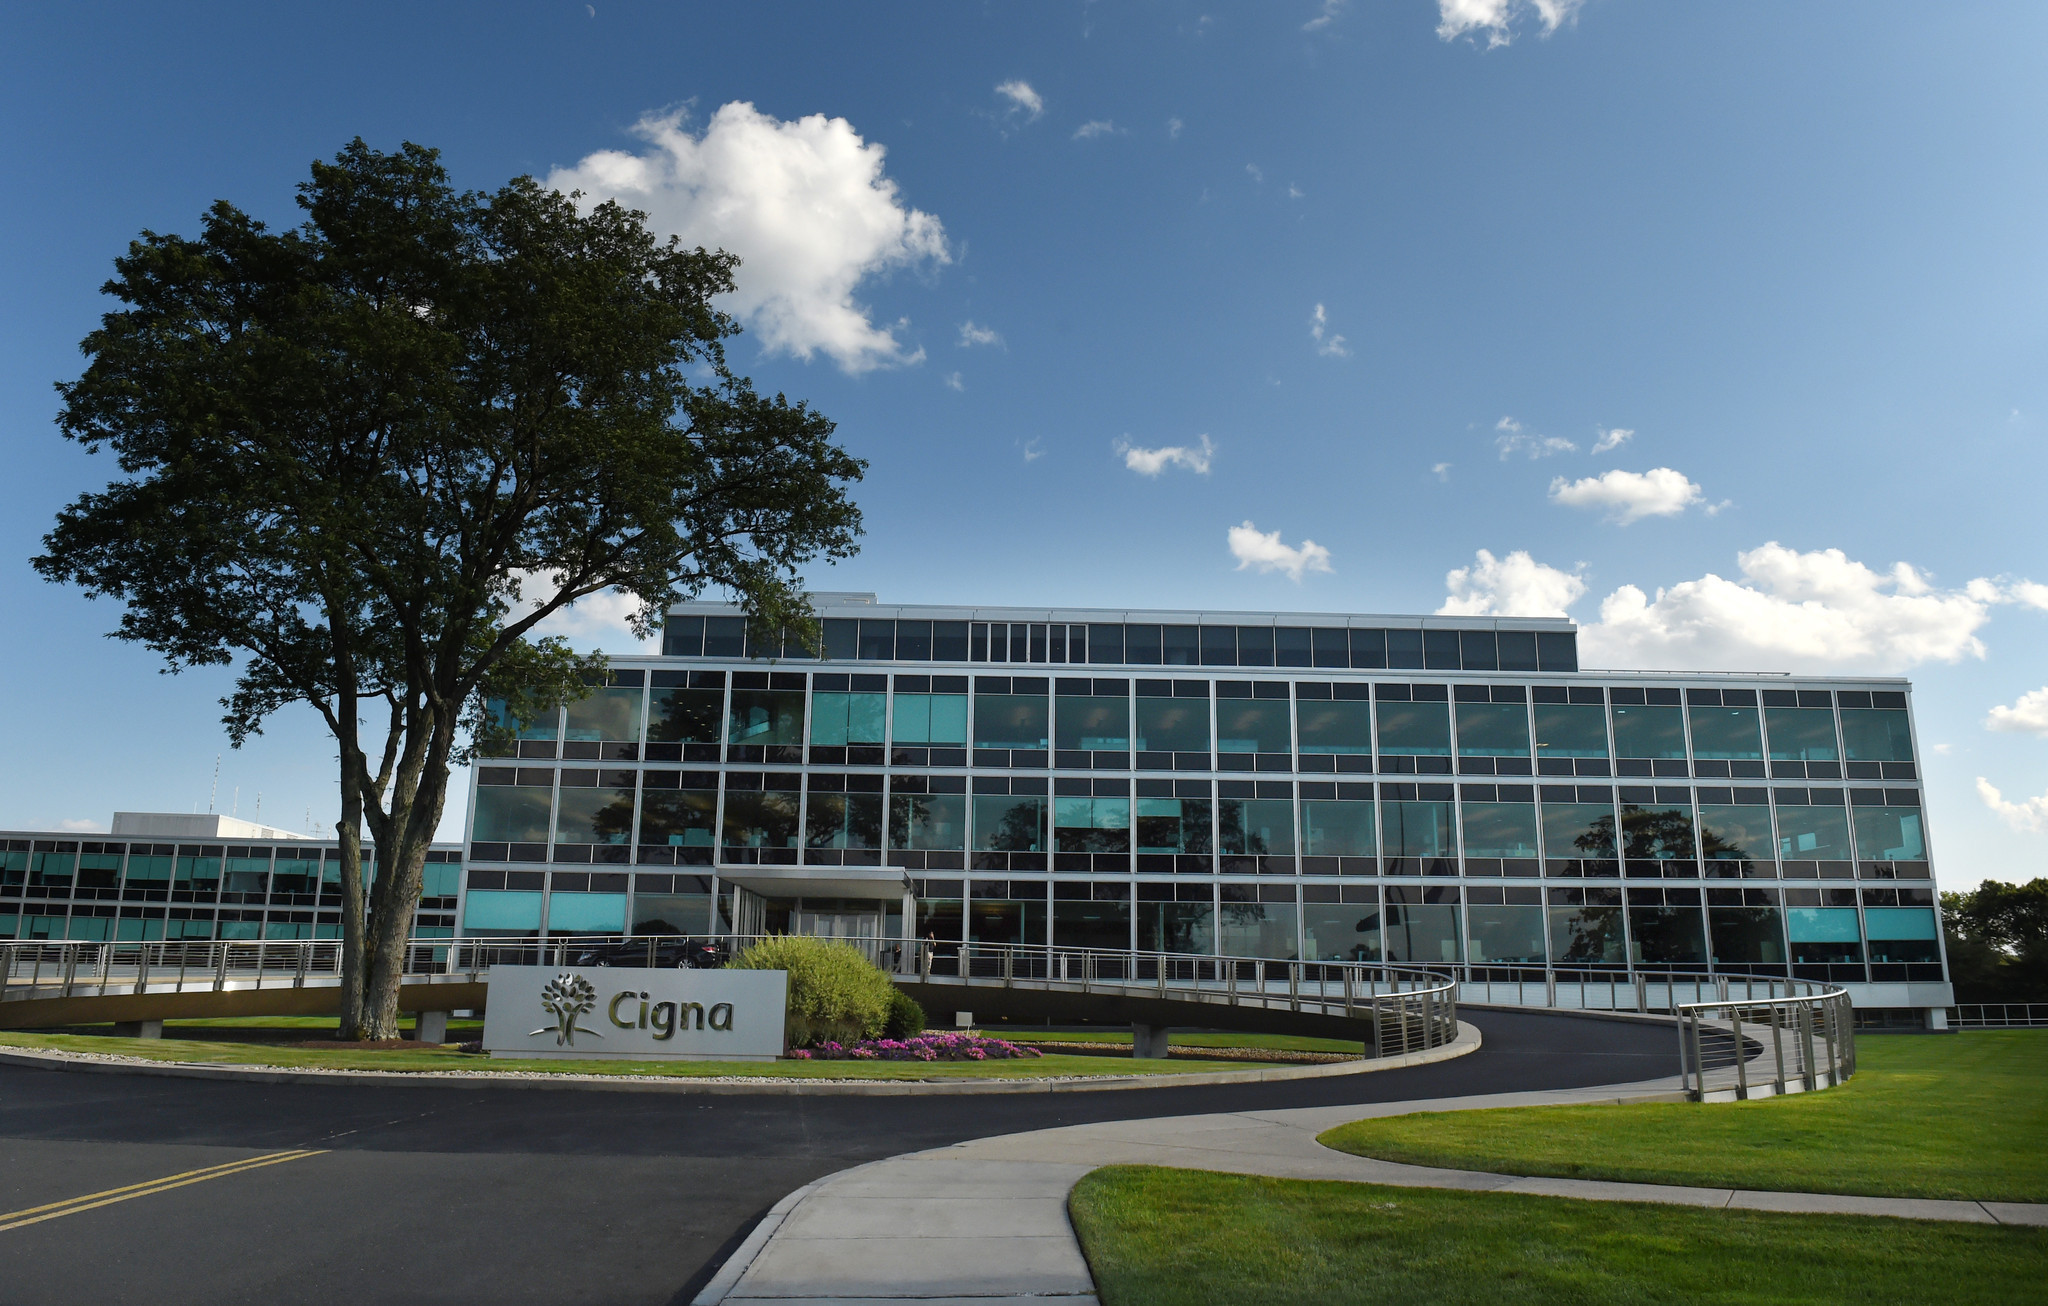 Cigna Subsidiary Lays Off 60 Employees